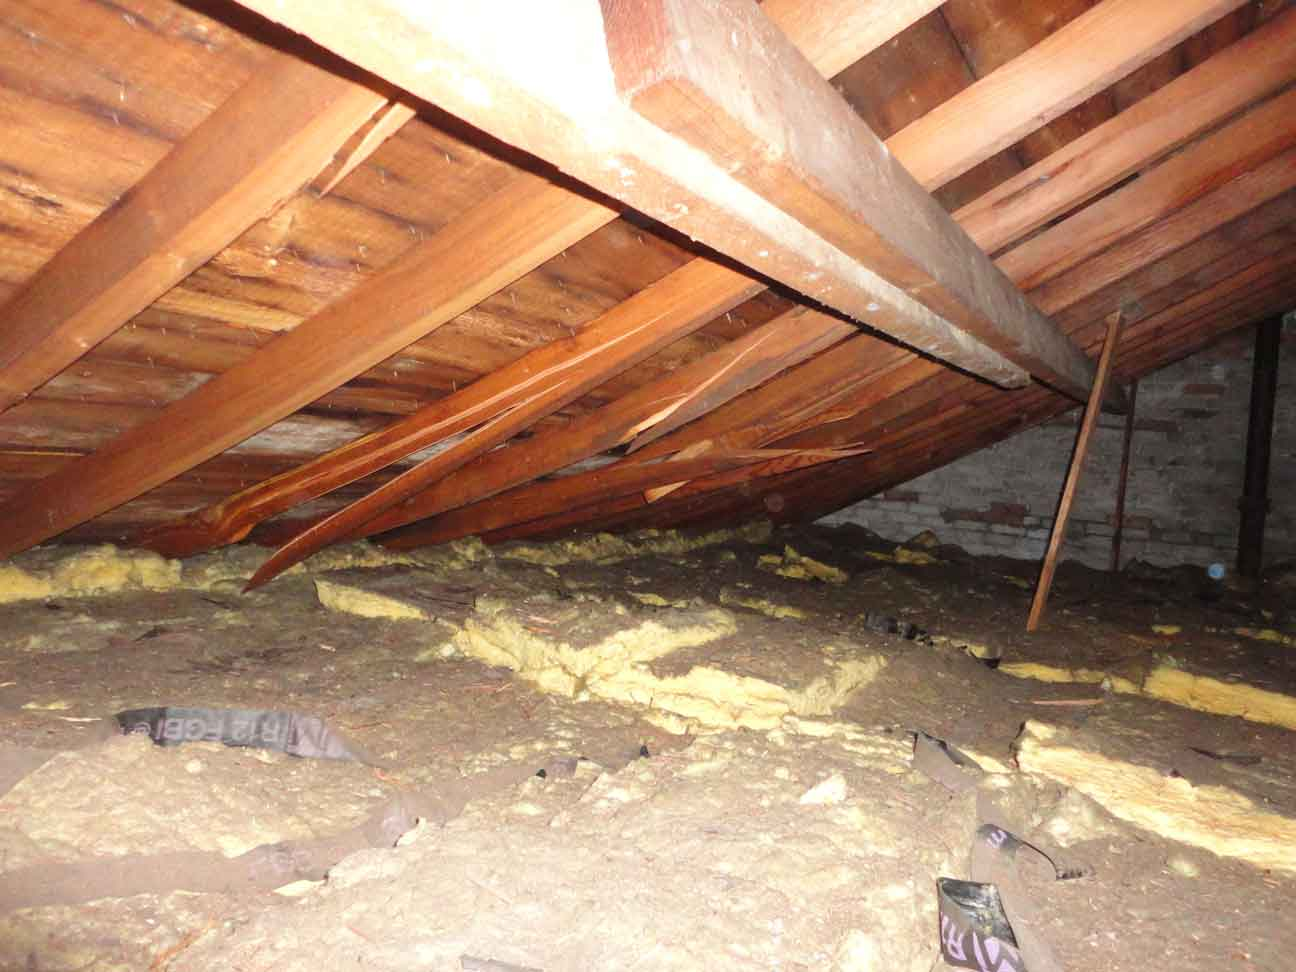 Inspection: inside attic reveals thatbeams/structure aresnapping.Insulation is good.